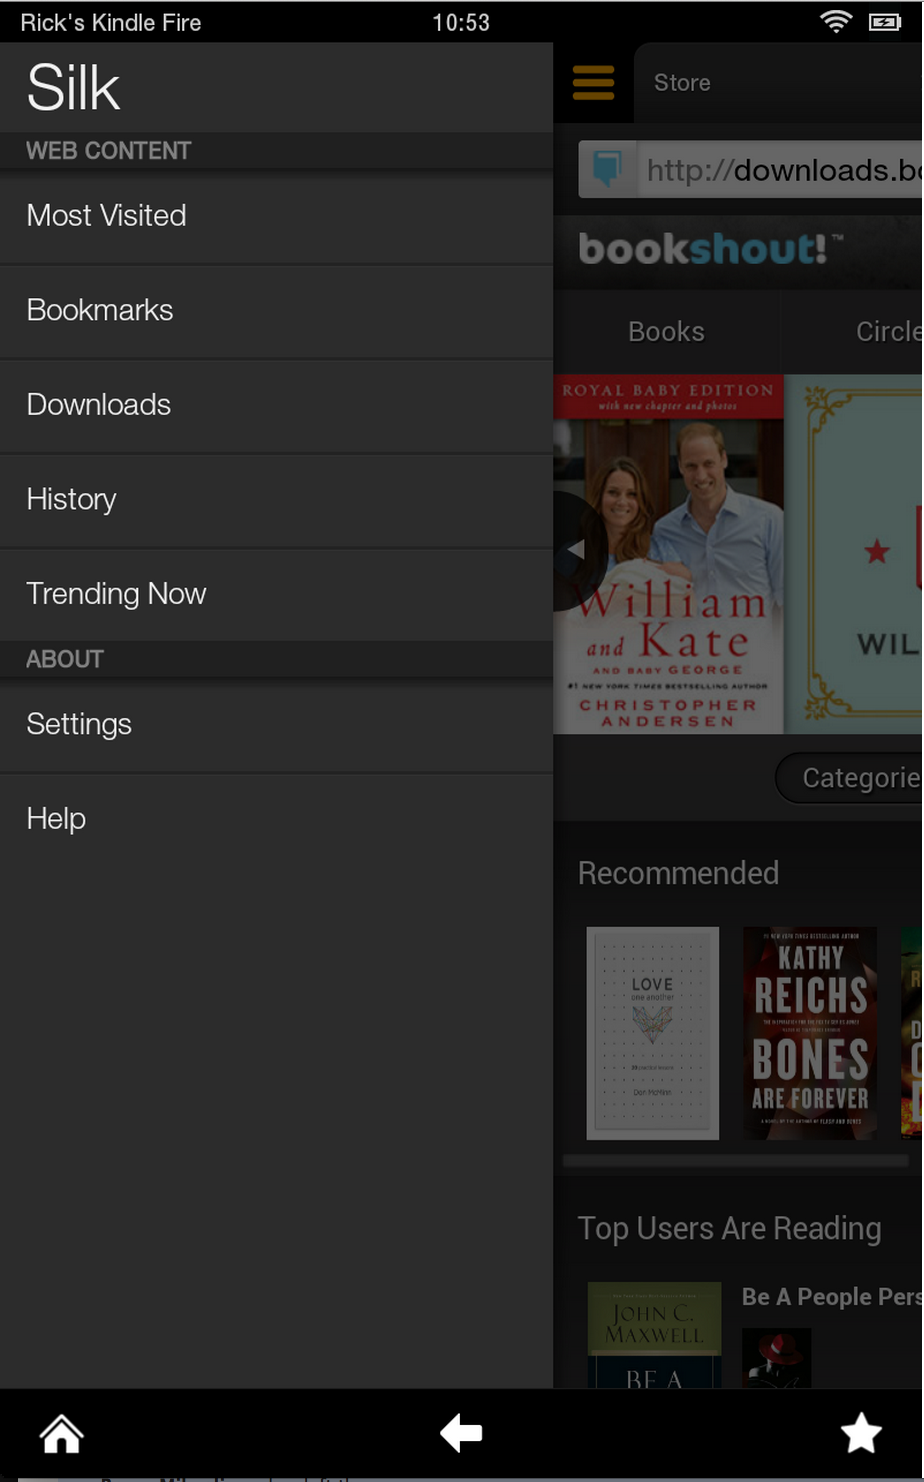 Bookshout App Not Found On Kindle Fire Hd Problems